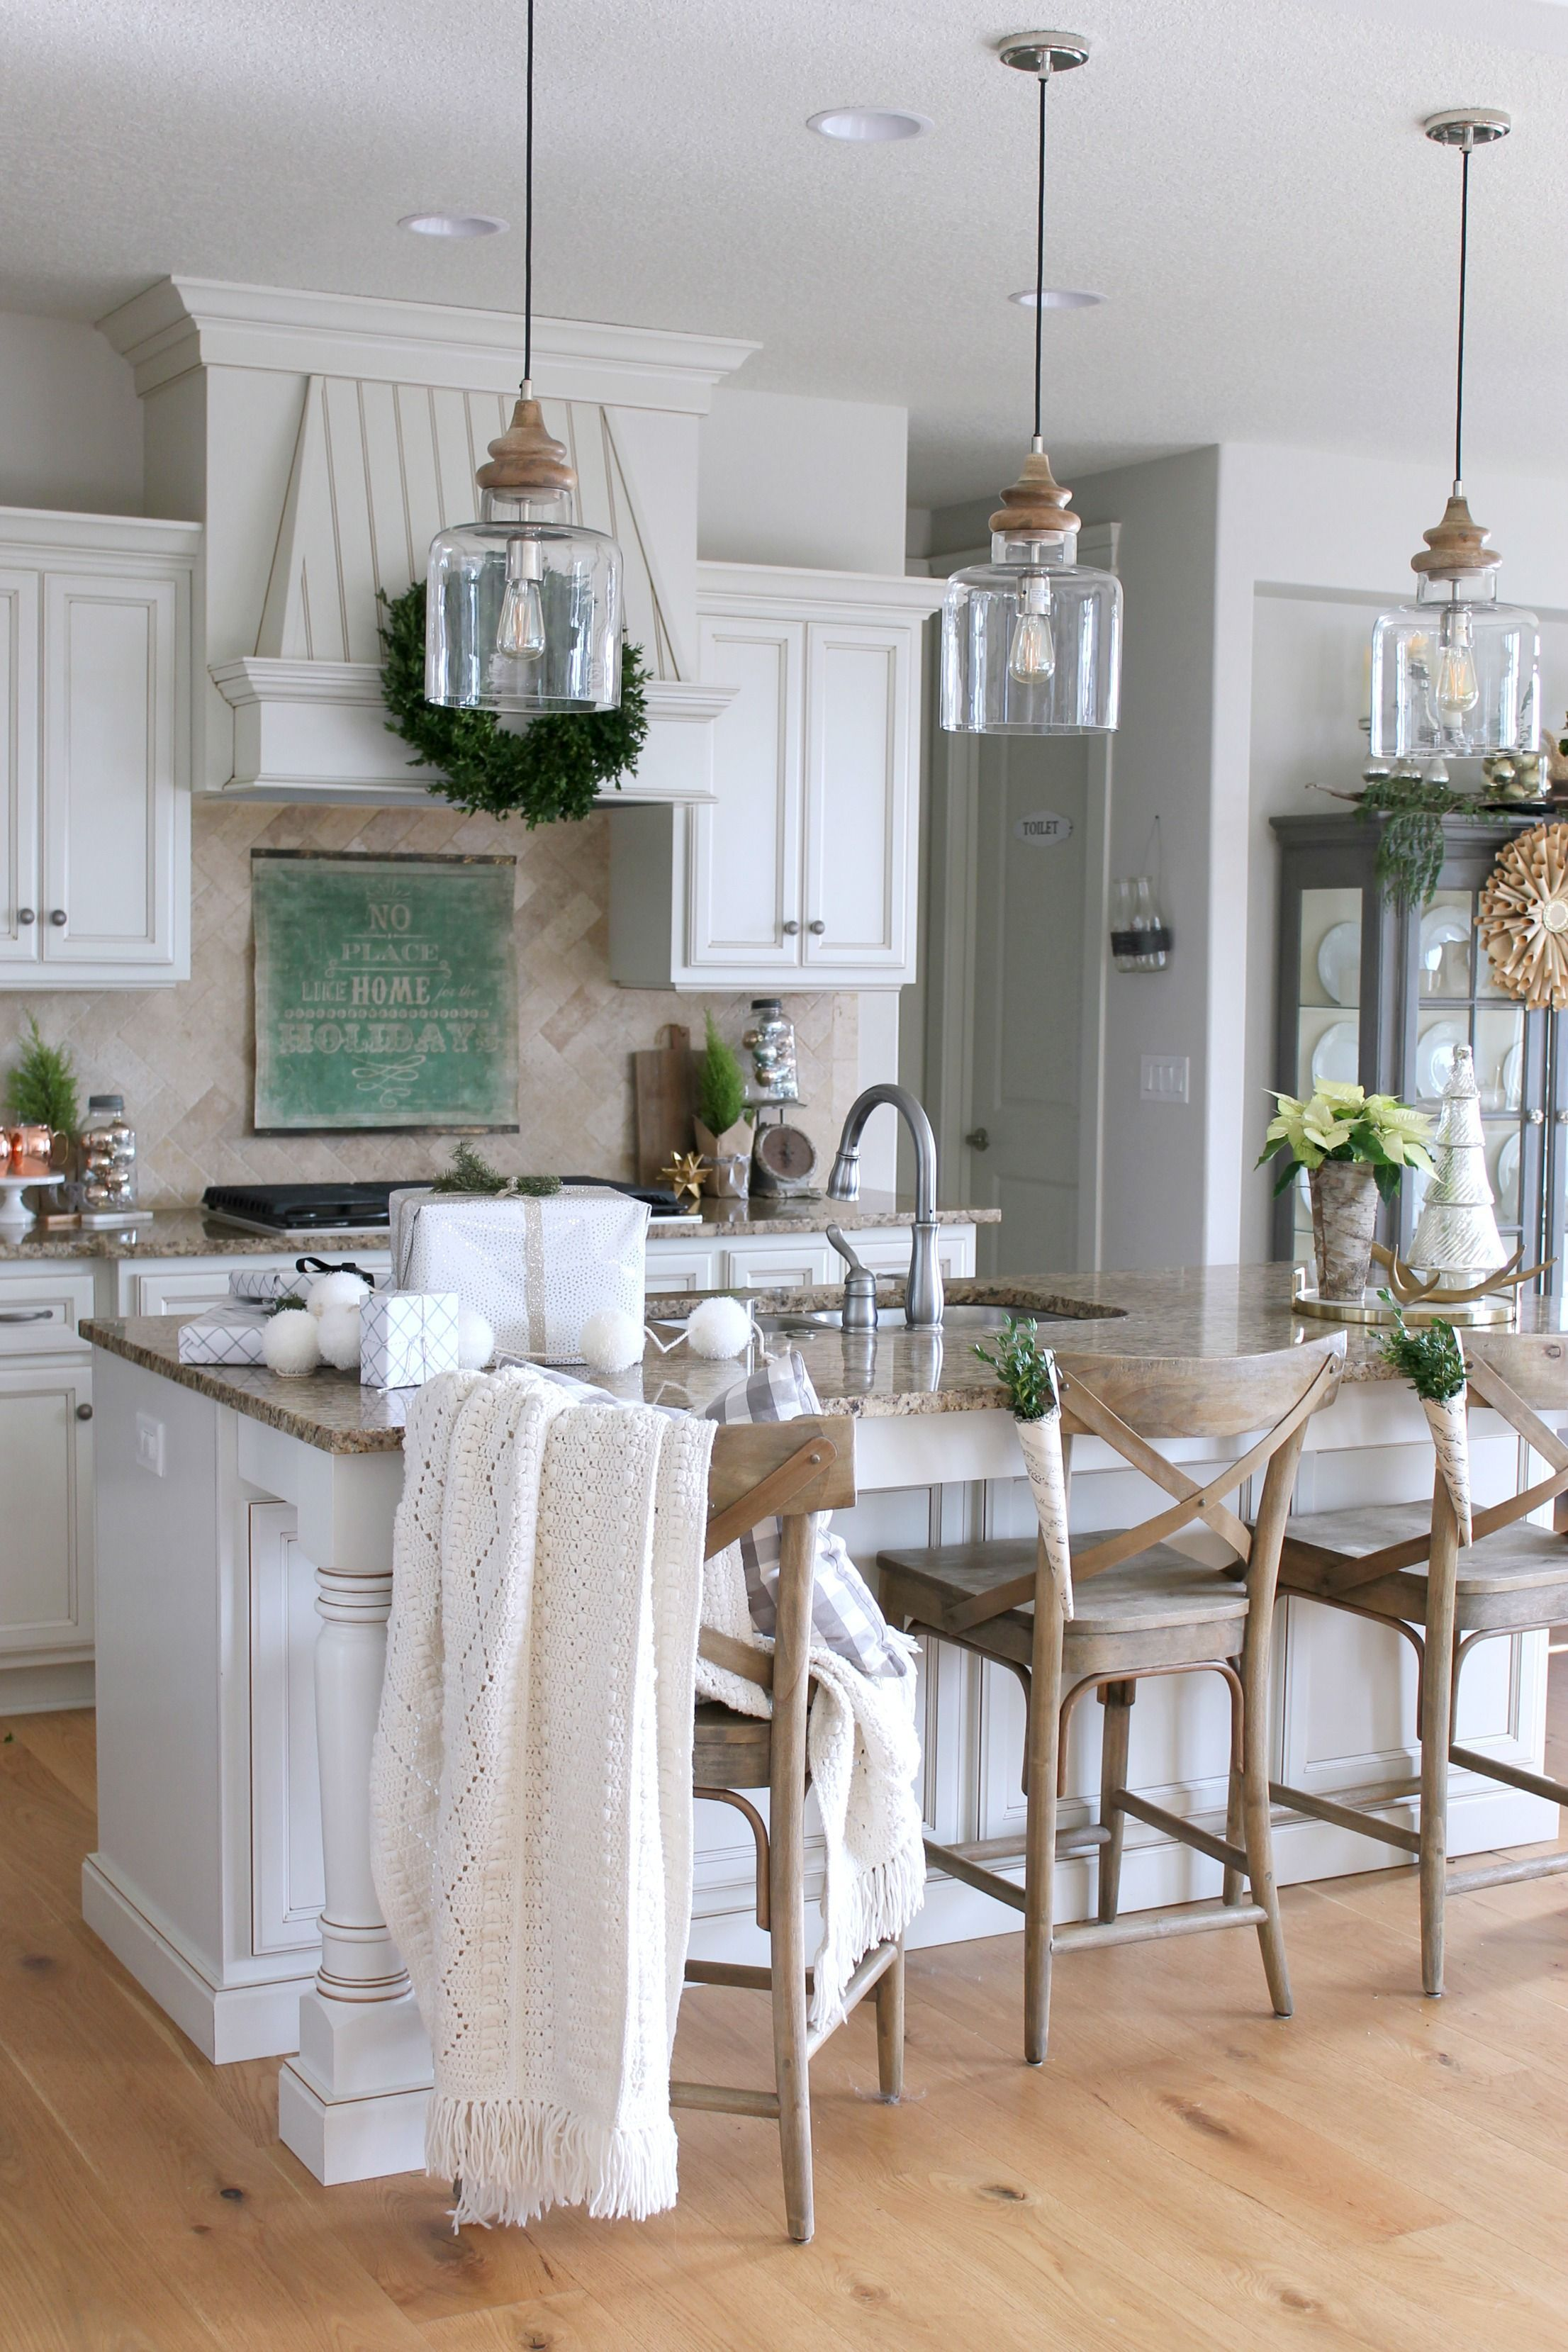 Kitchen lighting design done right can make a big difference in ...